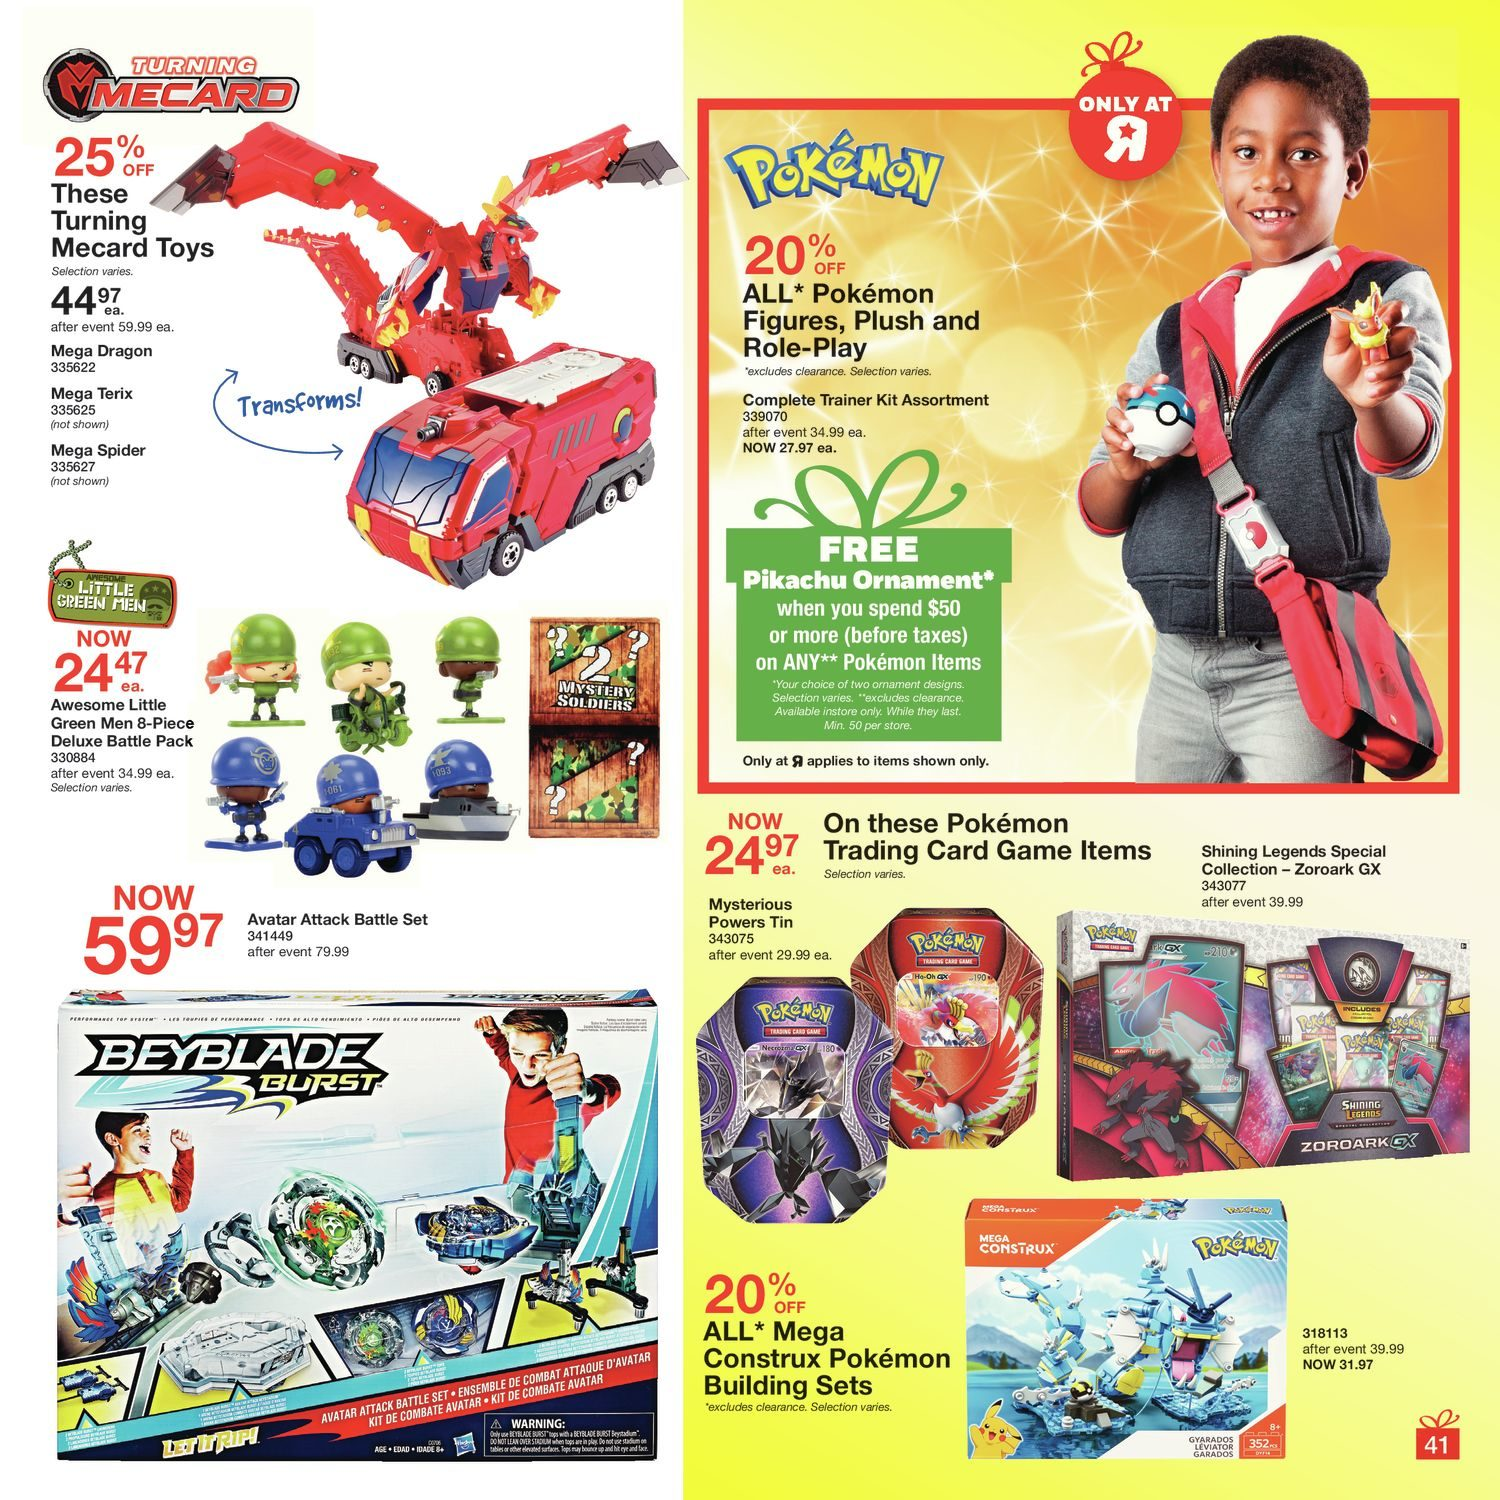 Toys R Us Weekly Flyer 2017 Playbook Nov 3 16 Iron Man Repulsor Fx Circuit V24 Light Sound Effects For Your